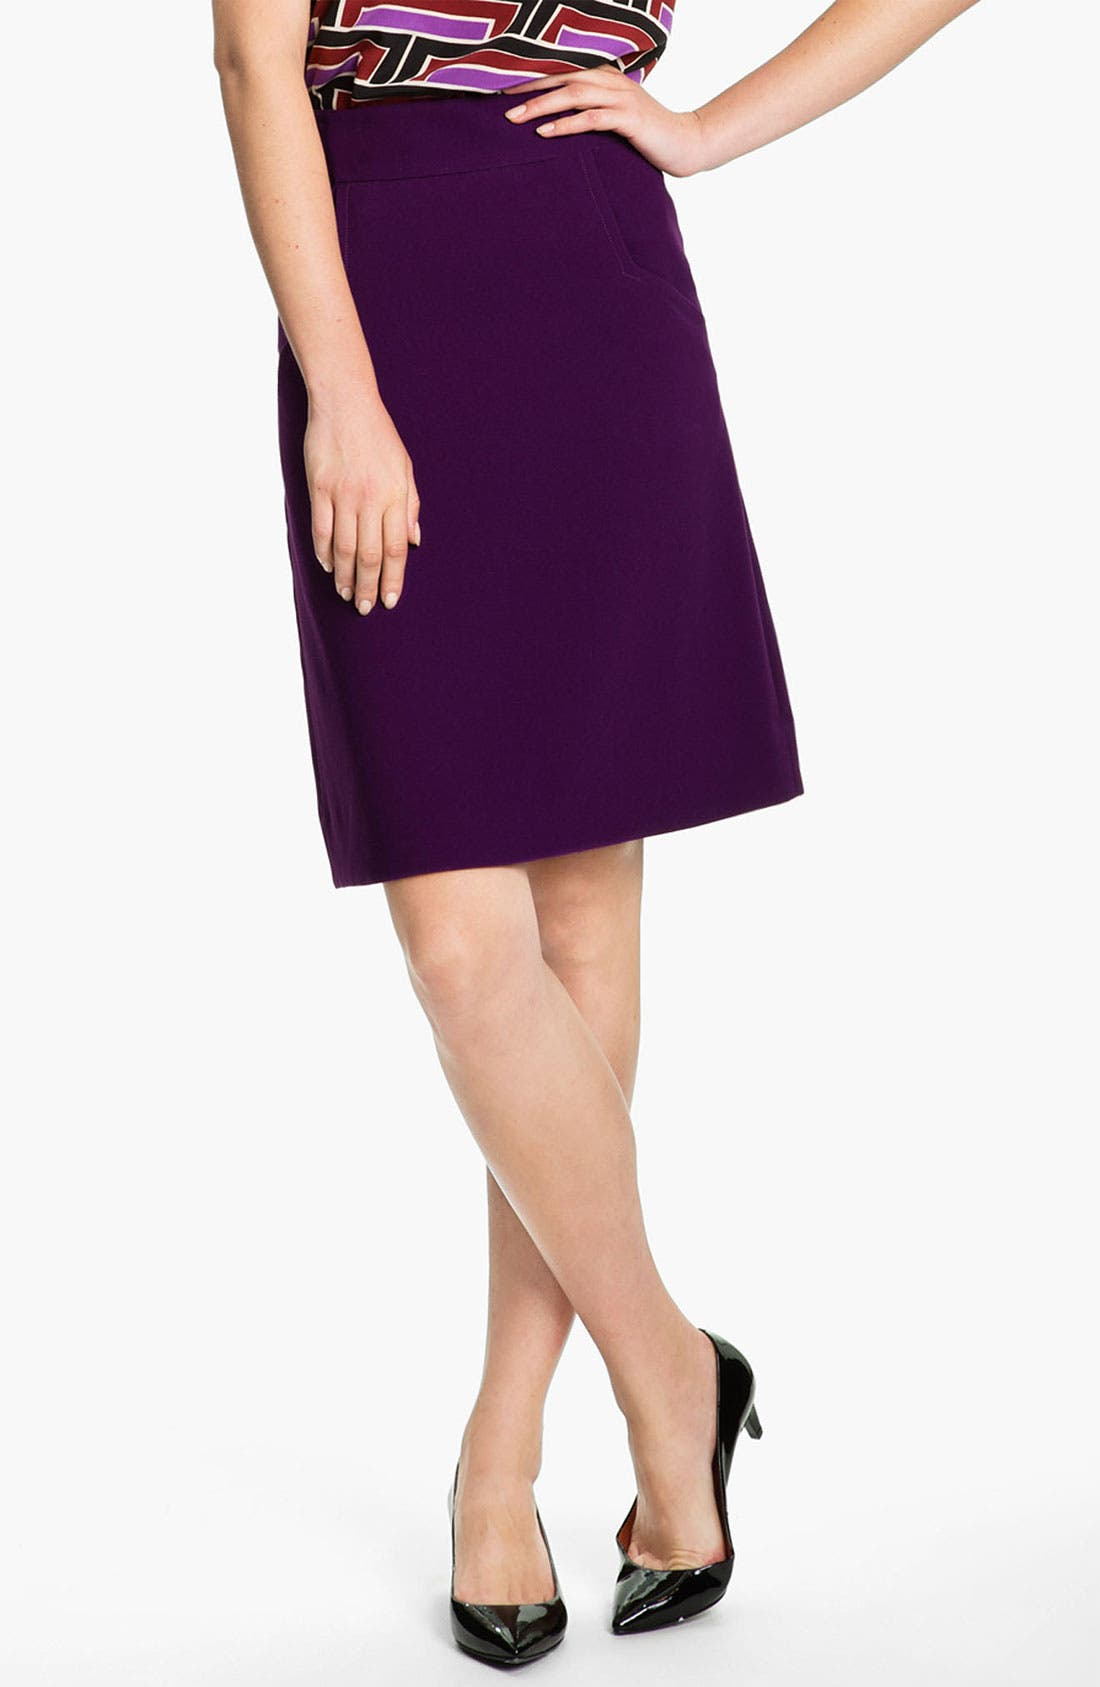 Alternate Image 1 Selected - kate spade new york 'tanisha' skirt